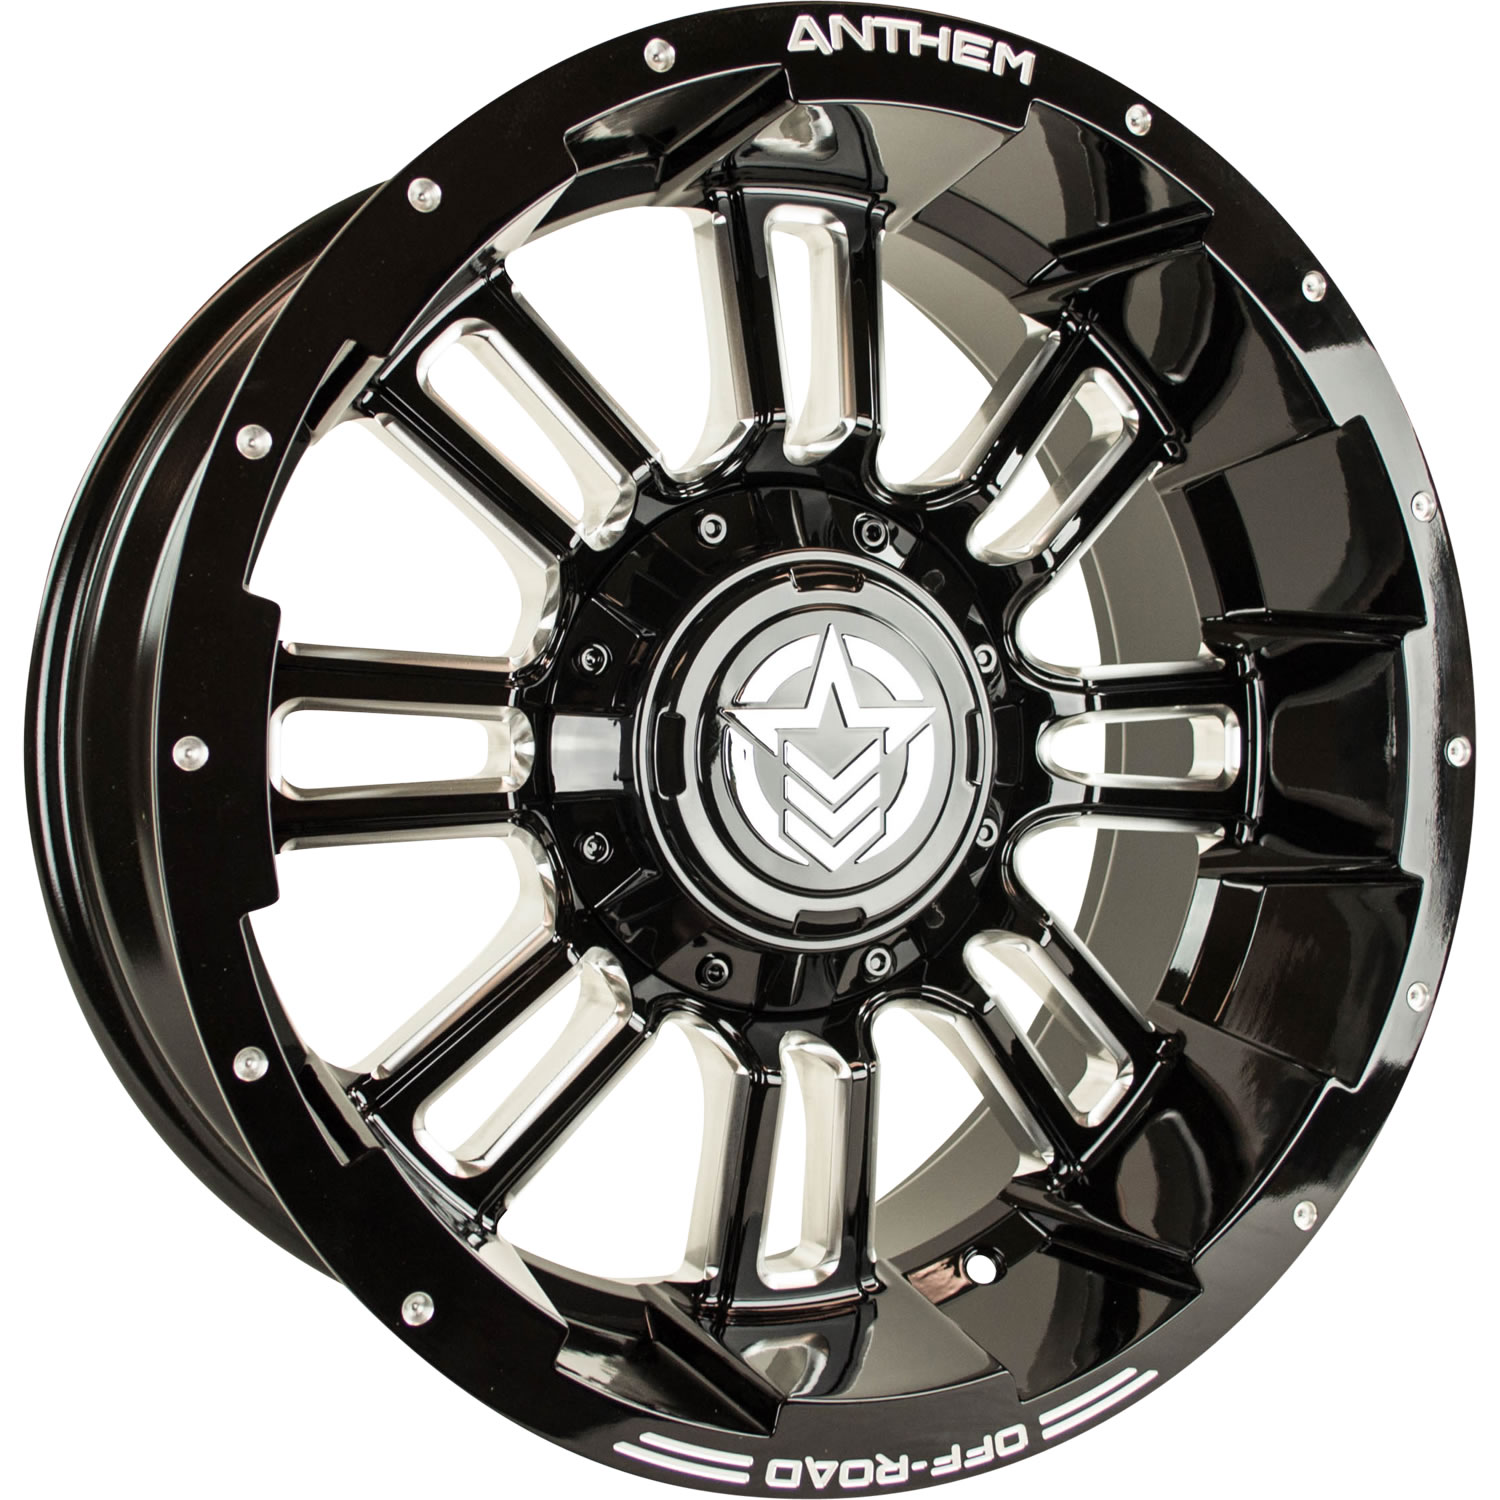 Anthem Enforcer 20x9 12